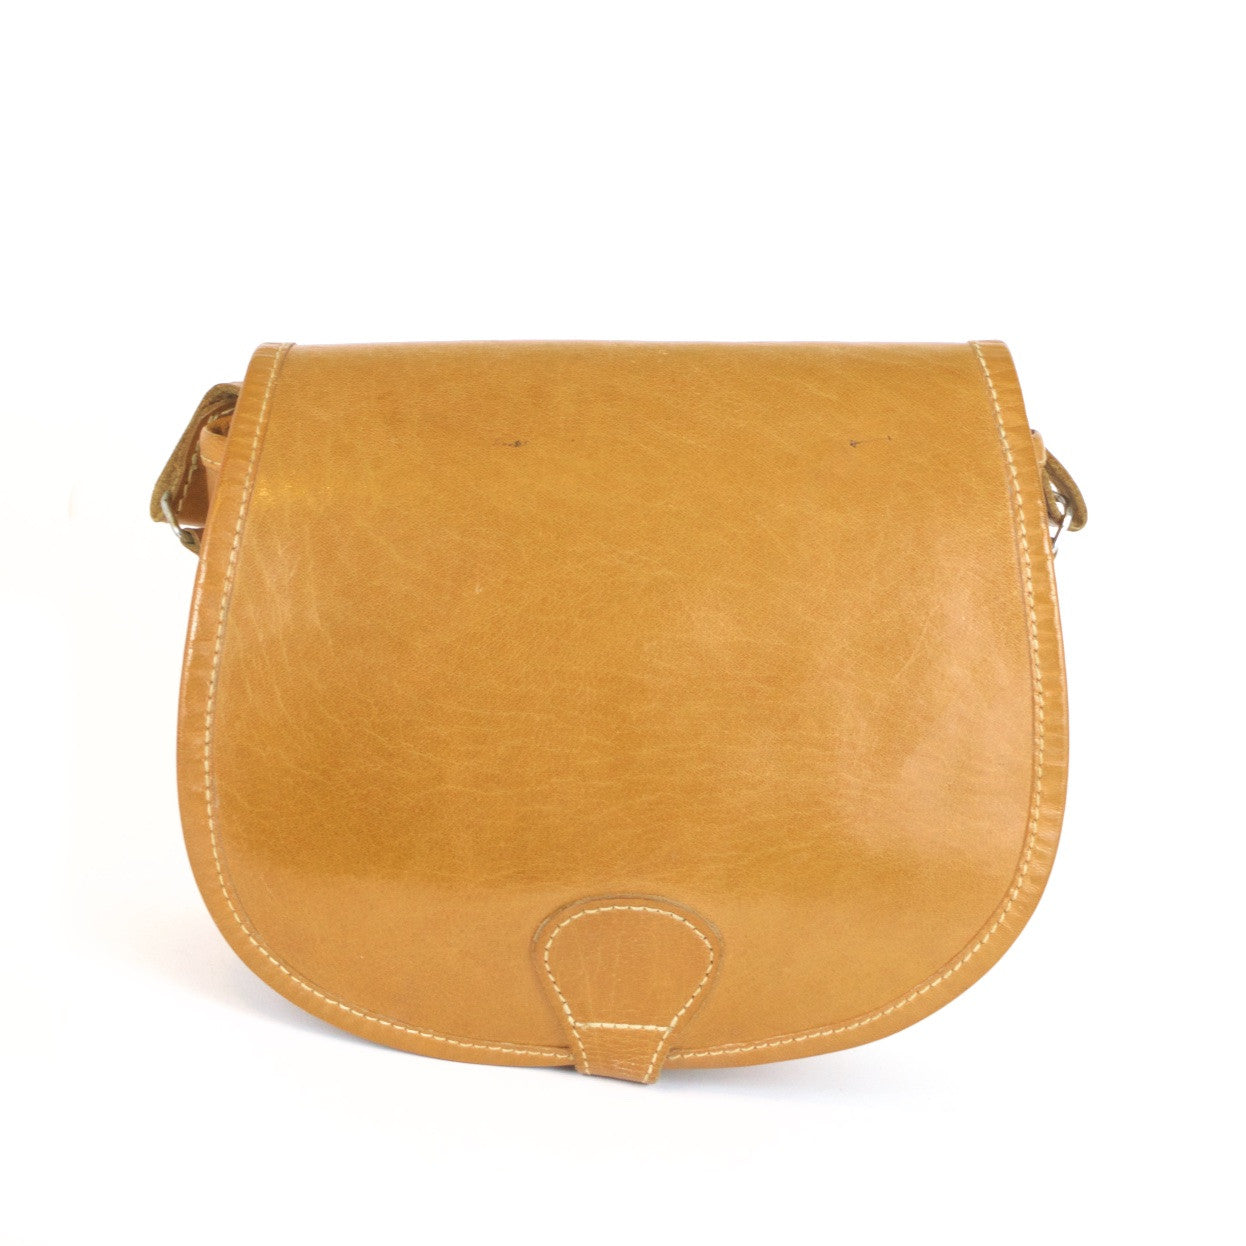 Mid tan leather vintage saddlebag